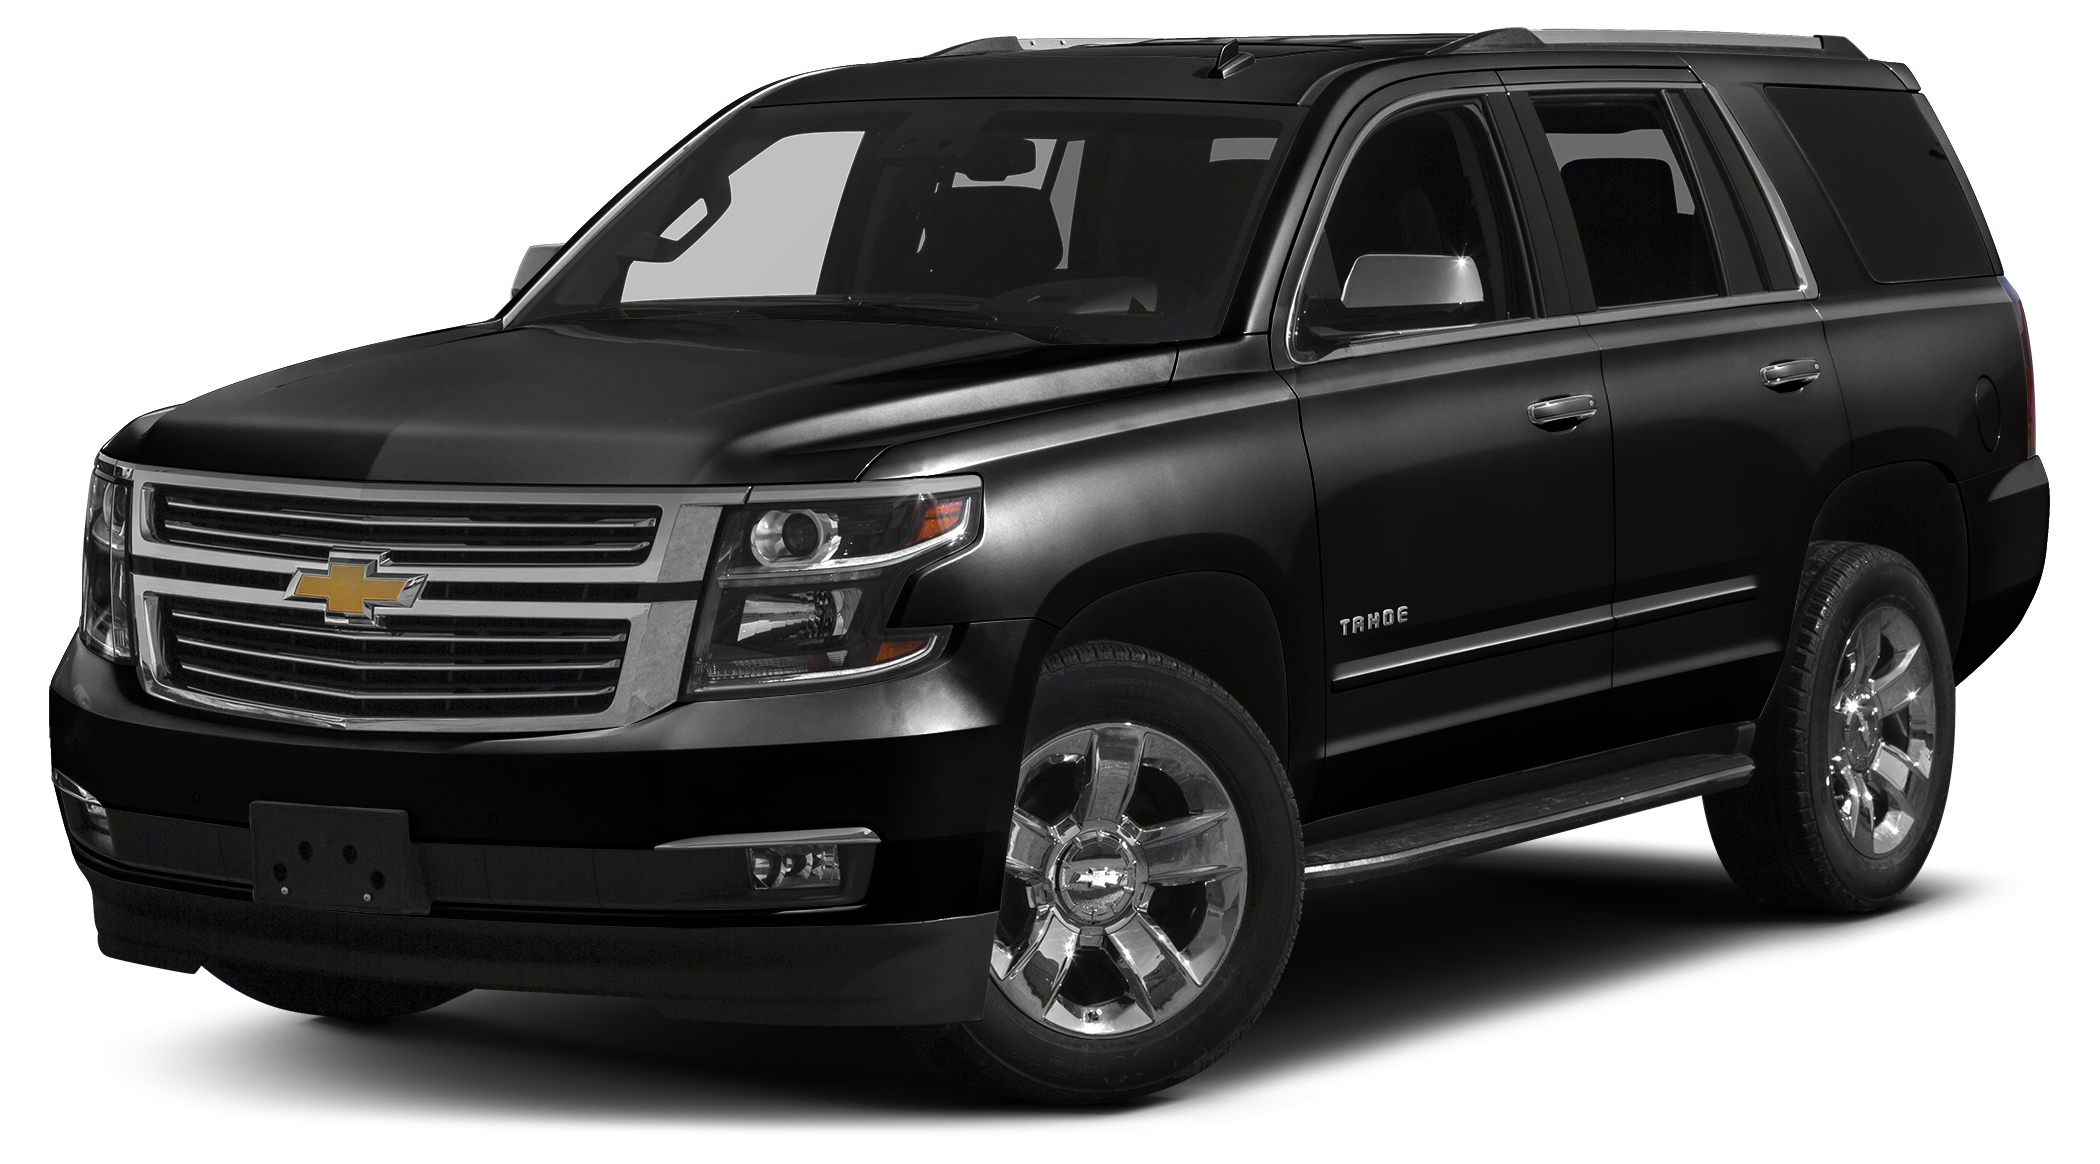 2015 Chevrolet Tahoe LT New Arrival CarFax One Owner This 2015 Chevrolet Tahoe LT Includes a M